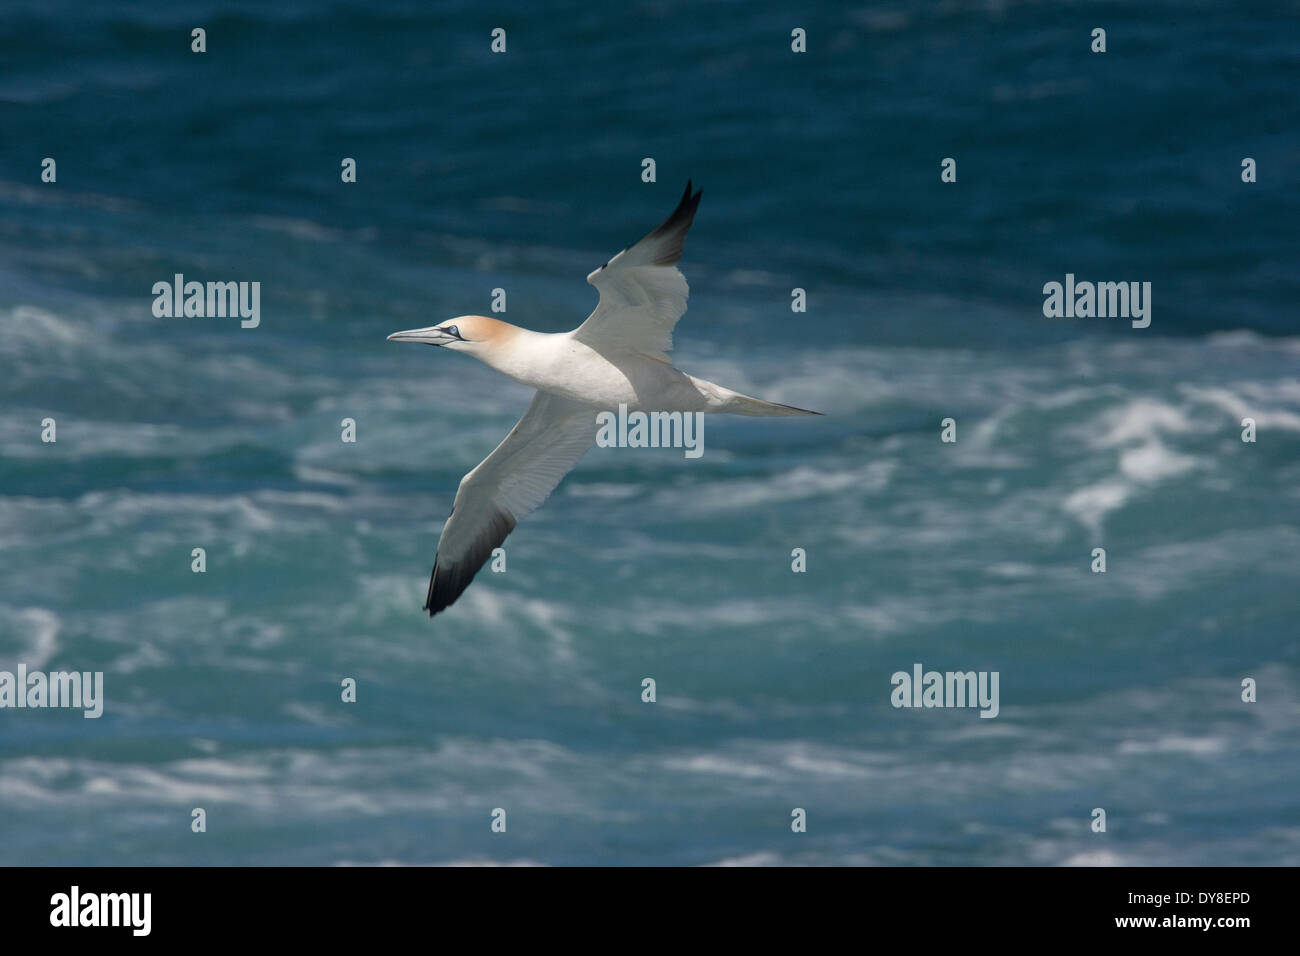 An adult Northern Gannet flying low over a rough sea off Cornwall, UK. - Stock Image